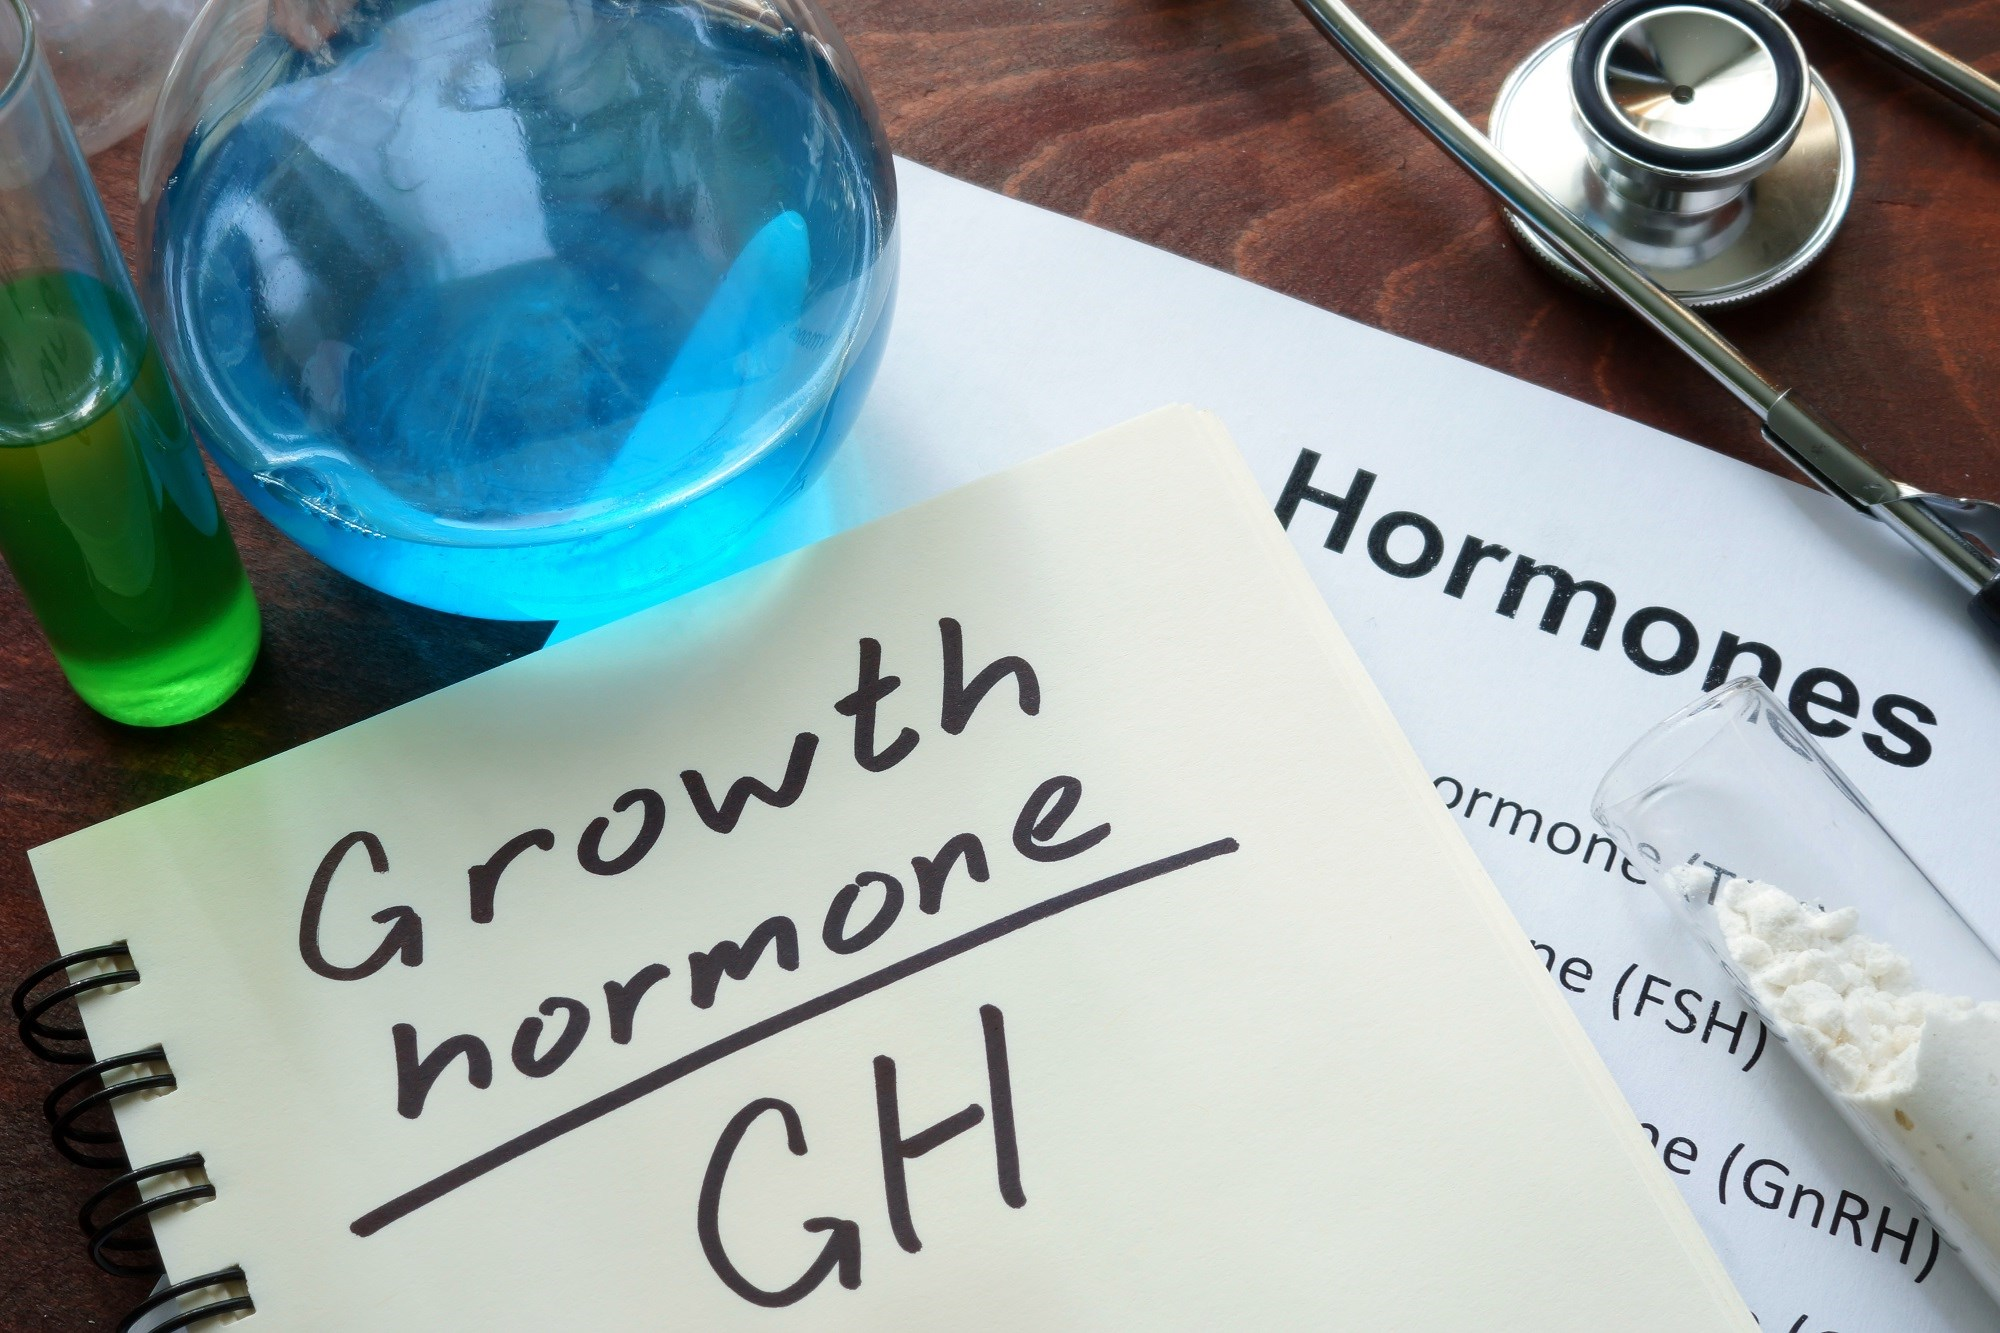 Researchers noted that growth hormone response to clonidine testing was not influenced by puberty.